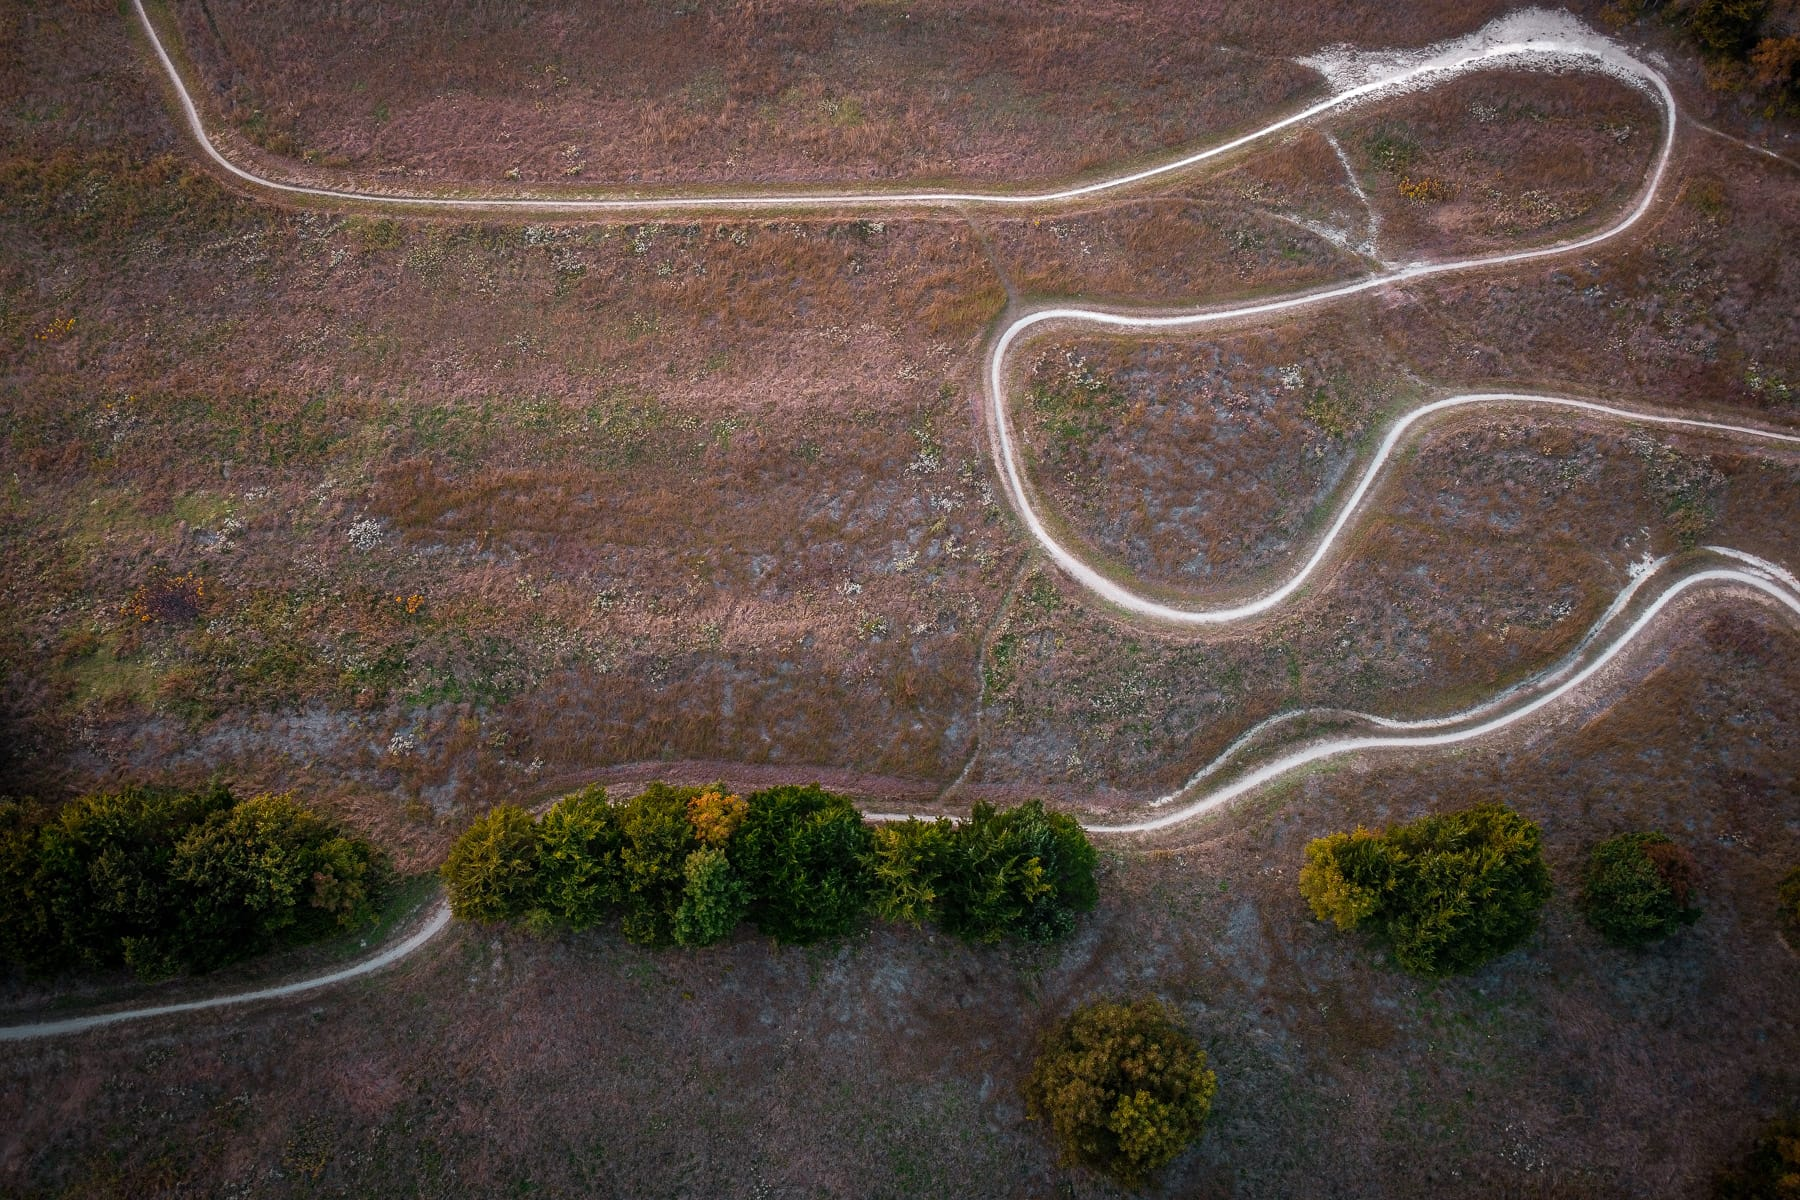 Bike trails zig-zag across the landscape of McKinney, Texas' Erwin Park.